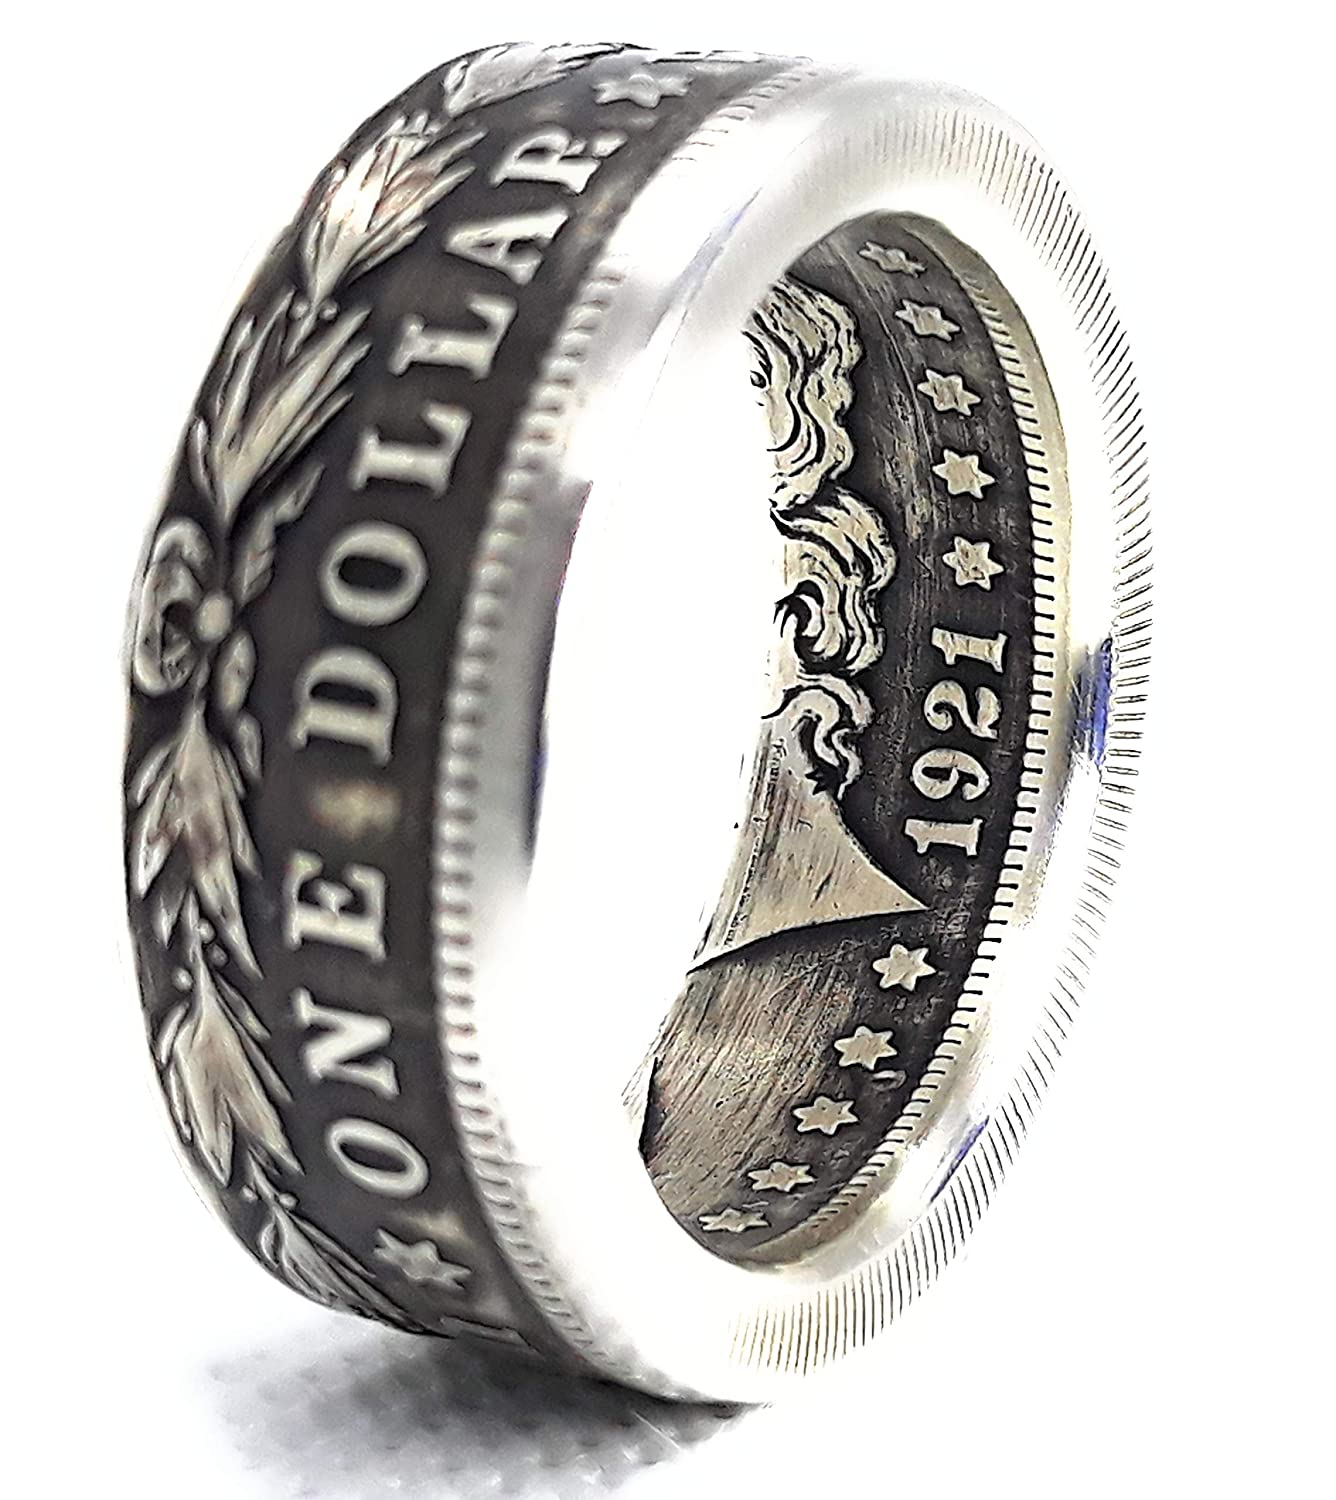 One of a kind Gift Silver coin ring Hammered Woody Texture Morgan Dollar 90/% fine silver jewelry size 11 12